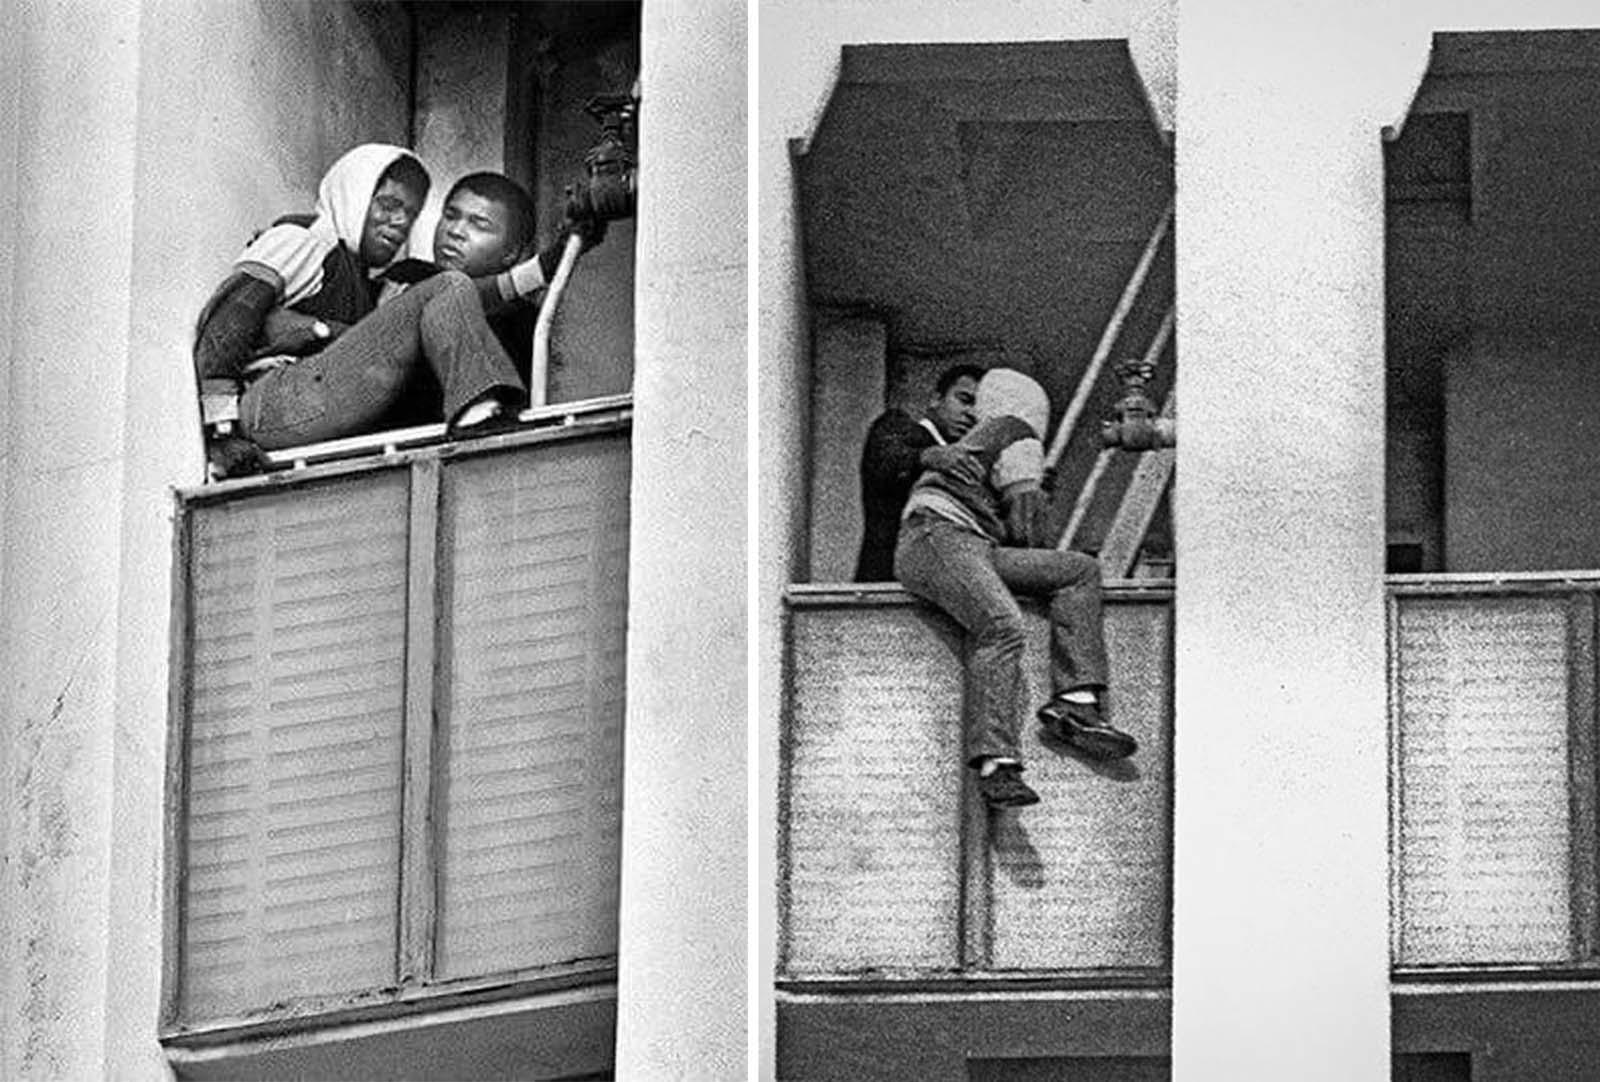 Ali (pictured helping the man down) leaned out of the window and told the man: 'You're my brother. I love you'